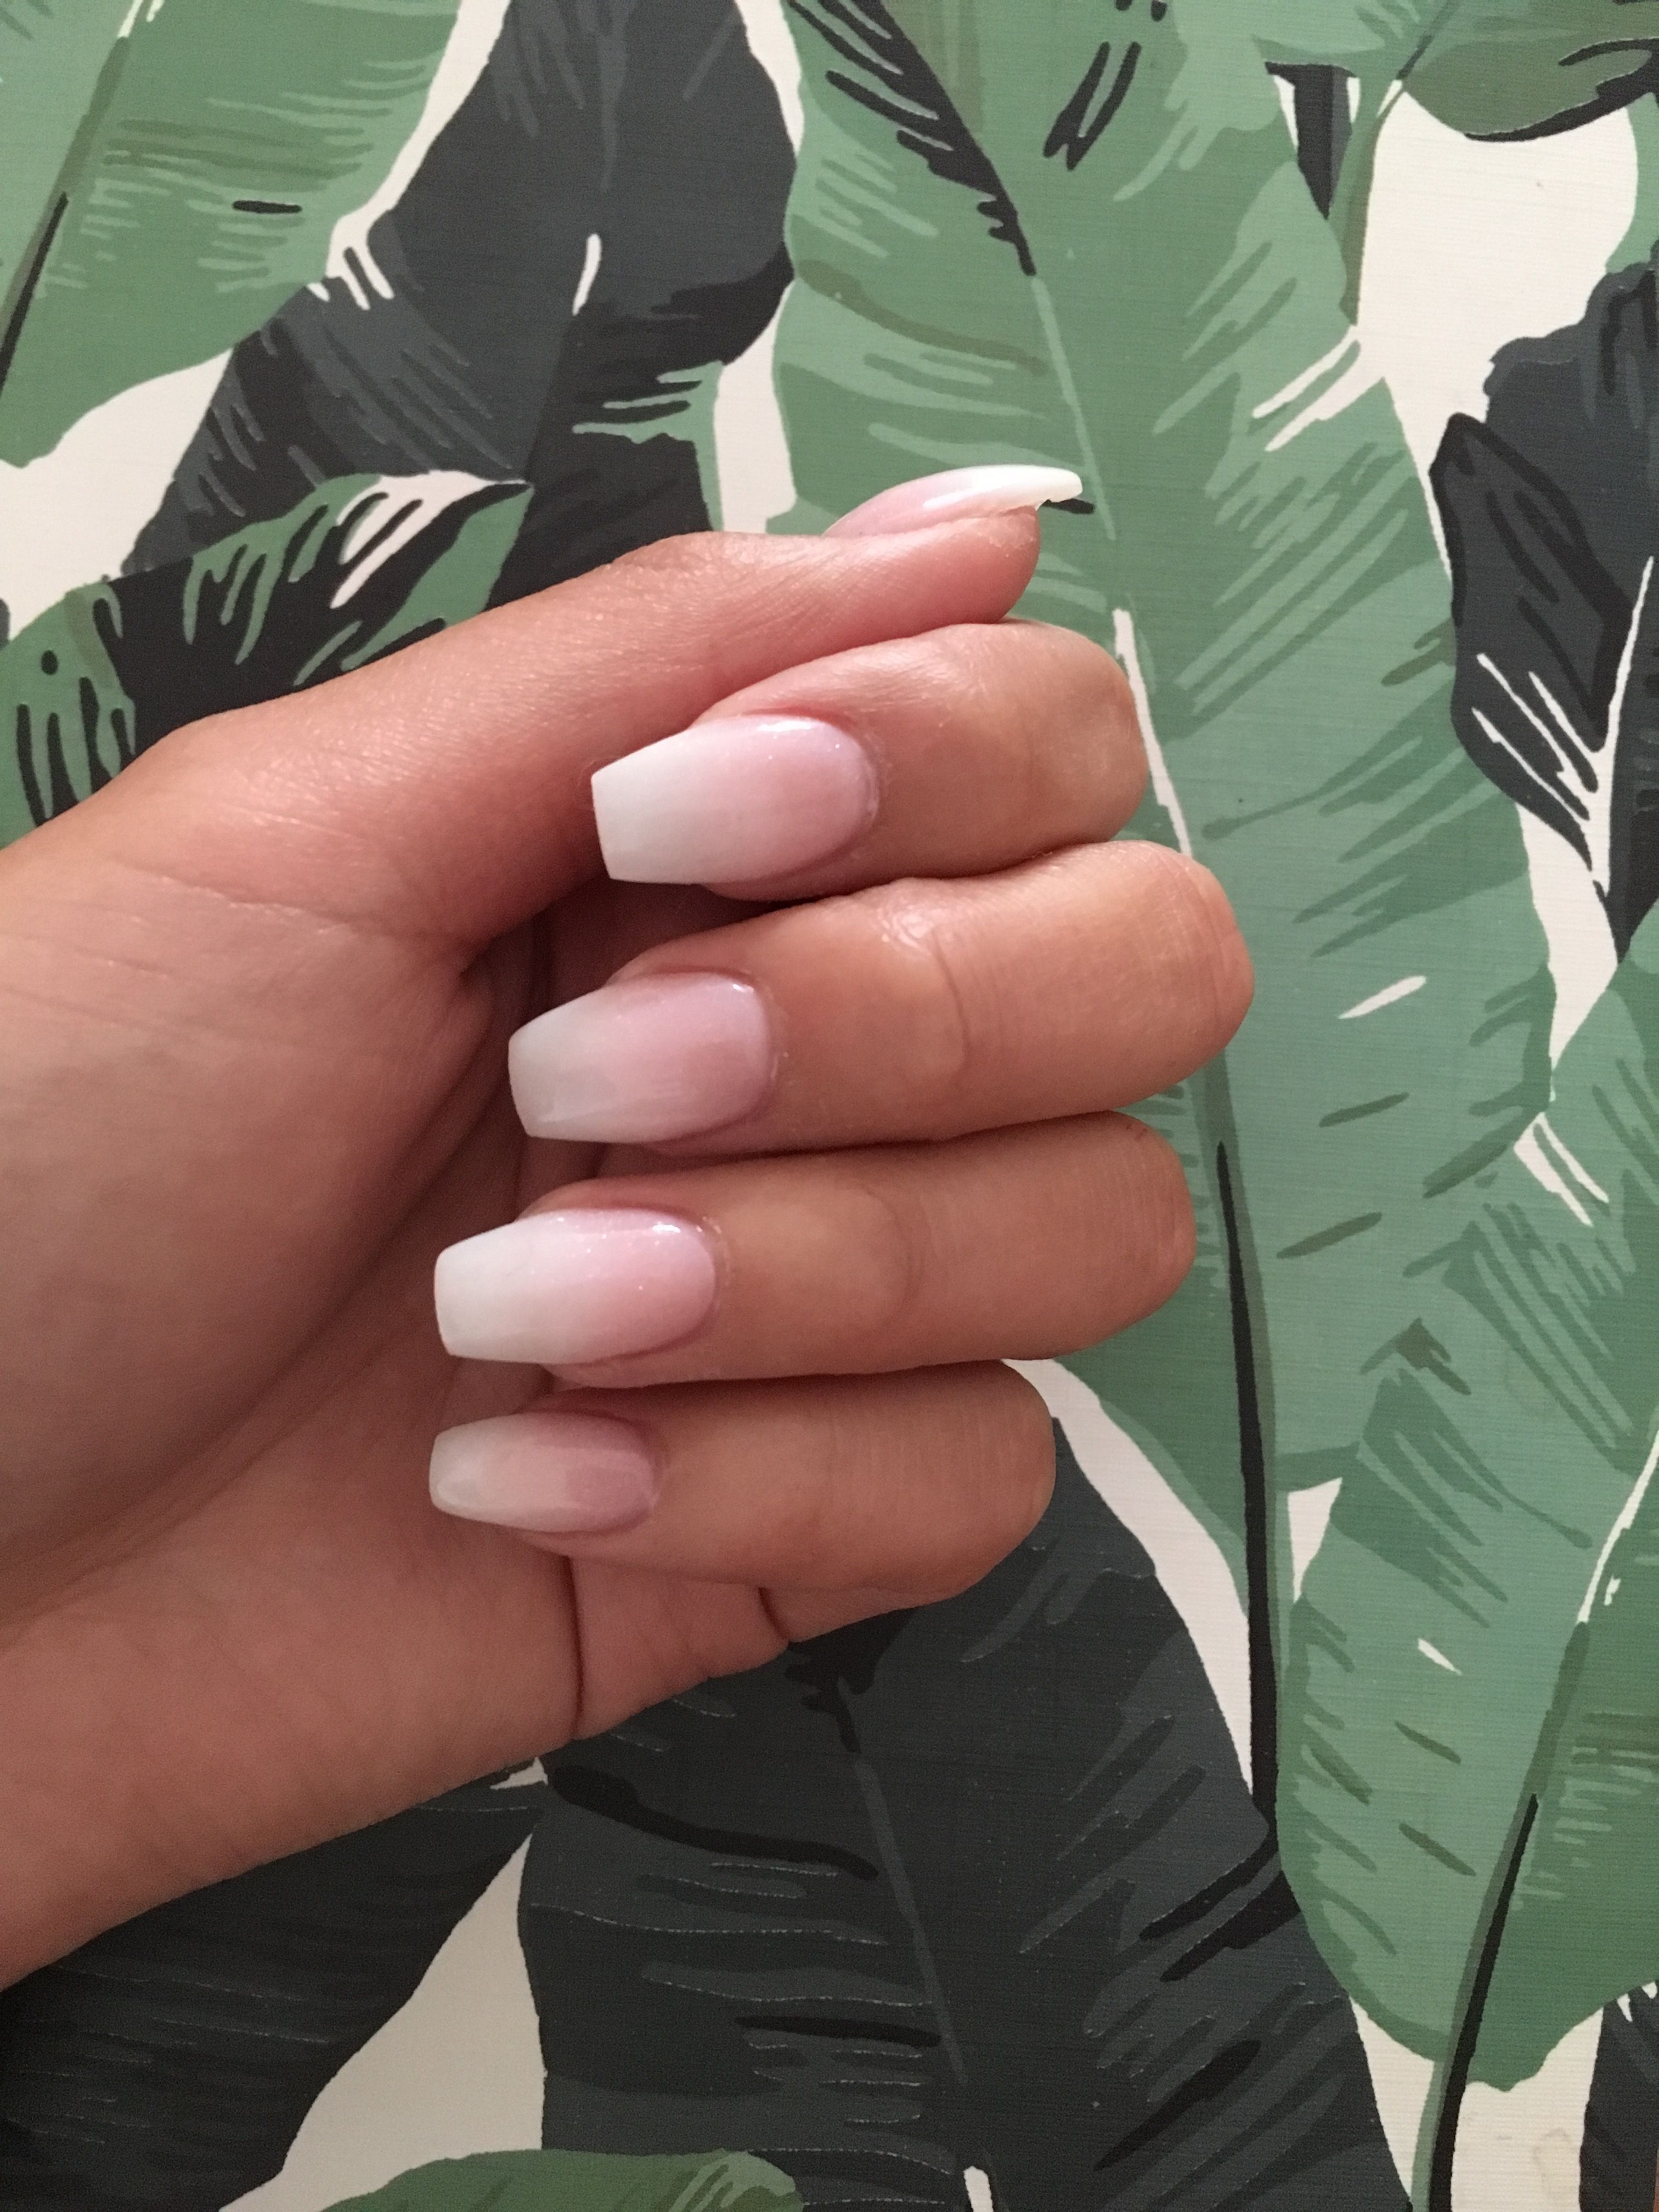 French Ombré / French fade nails   Nails   Pinterest   French fade ...